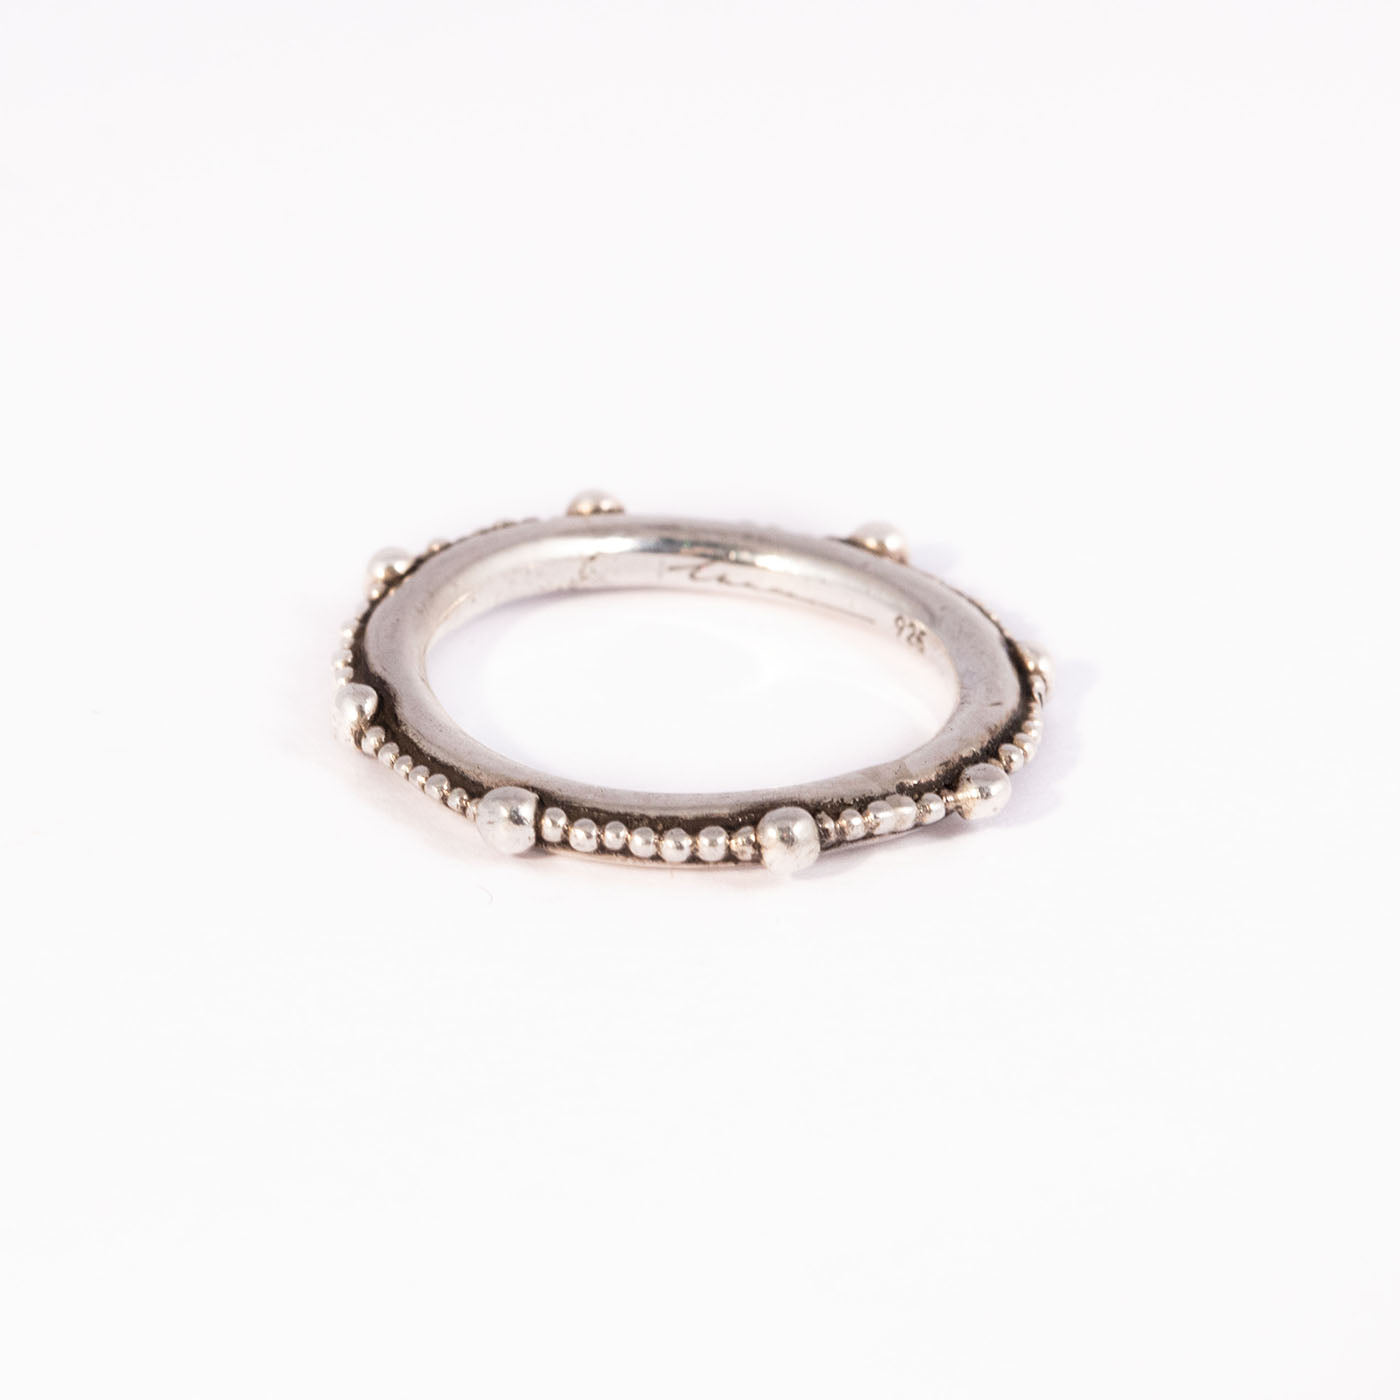 INNAN Jewellery designer Cenote Pearl Ring in sterling silver handmade in Berlin